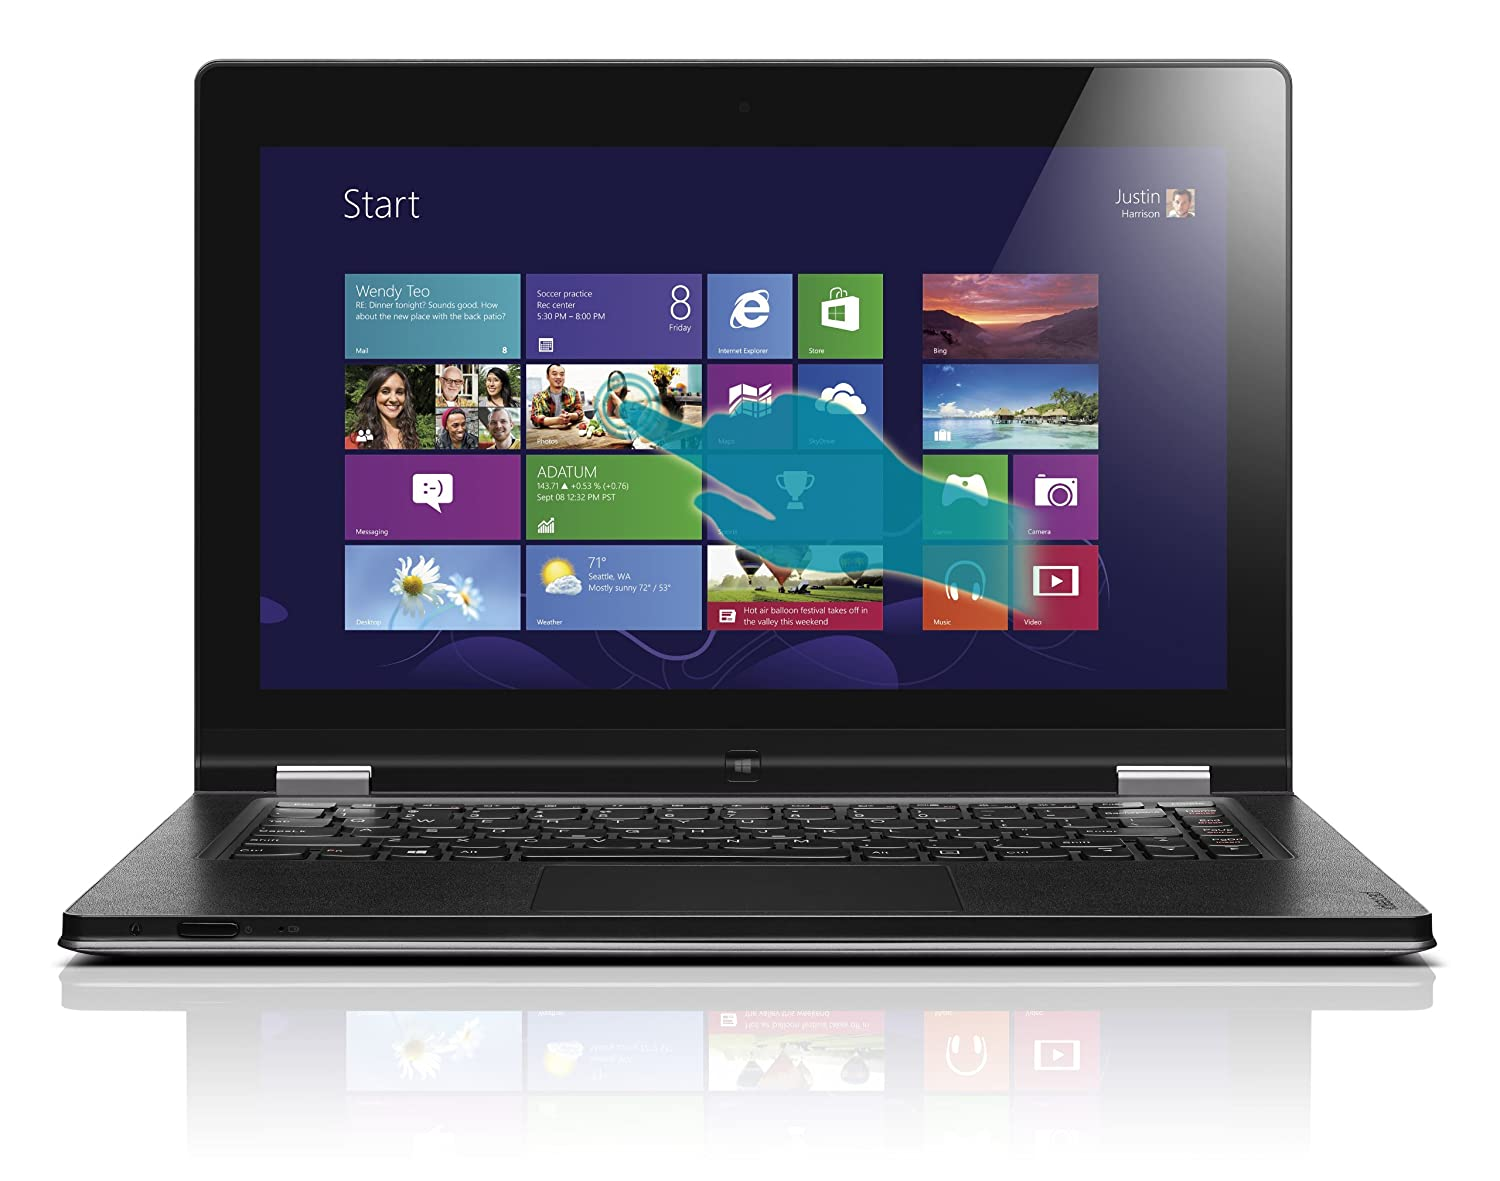 Lenovo IdeaPad Yoga 13 13.3-Inch Convertible Touchscreen Ultrabook ($799.99)